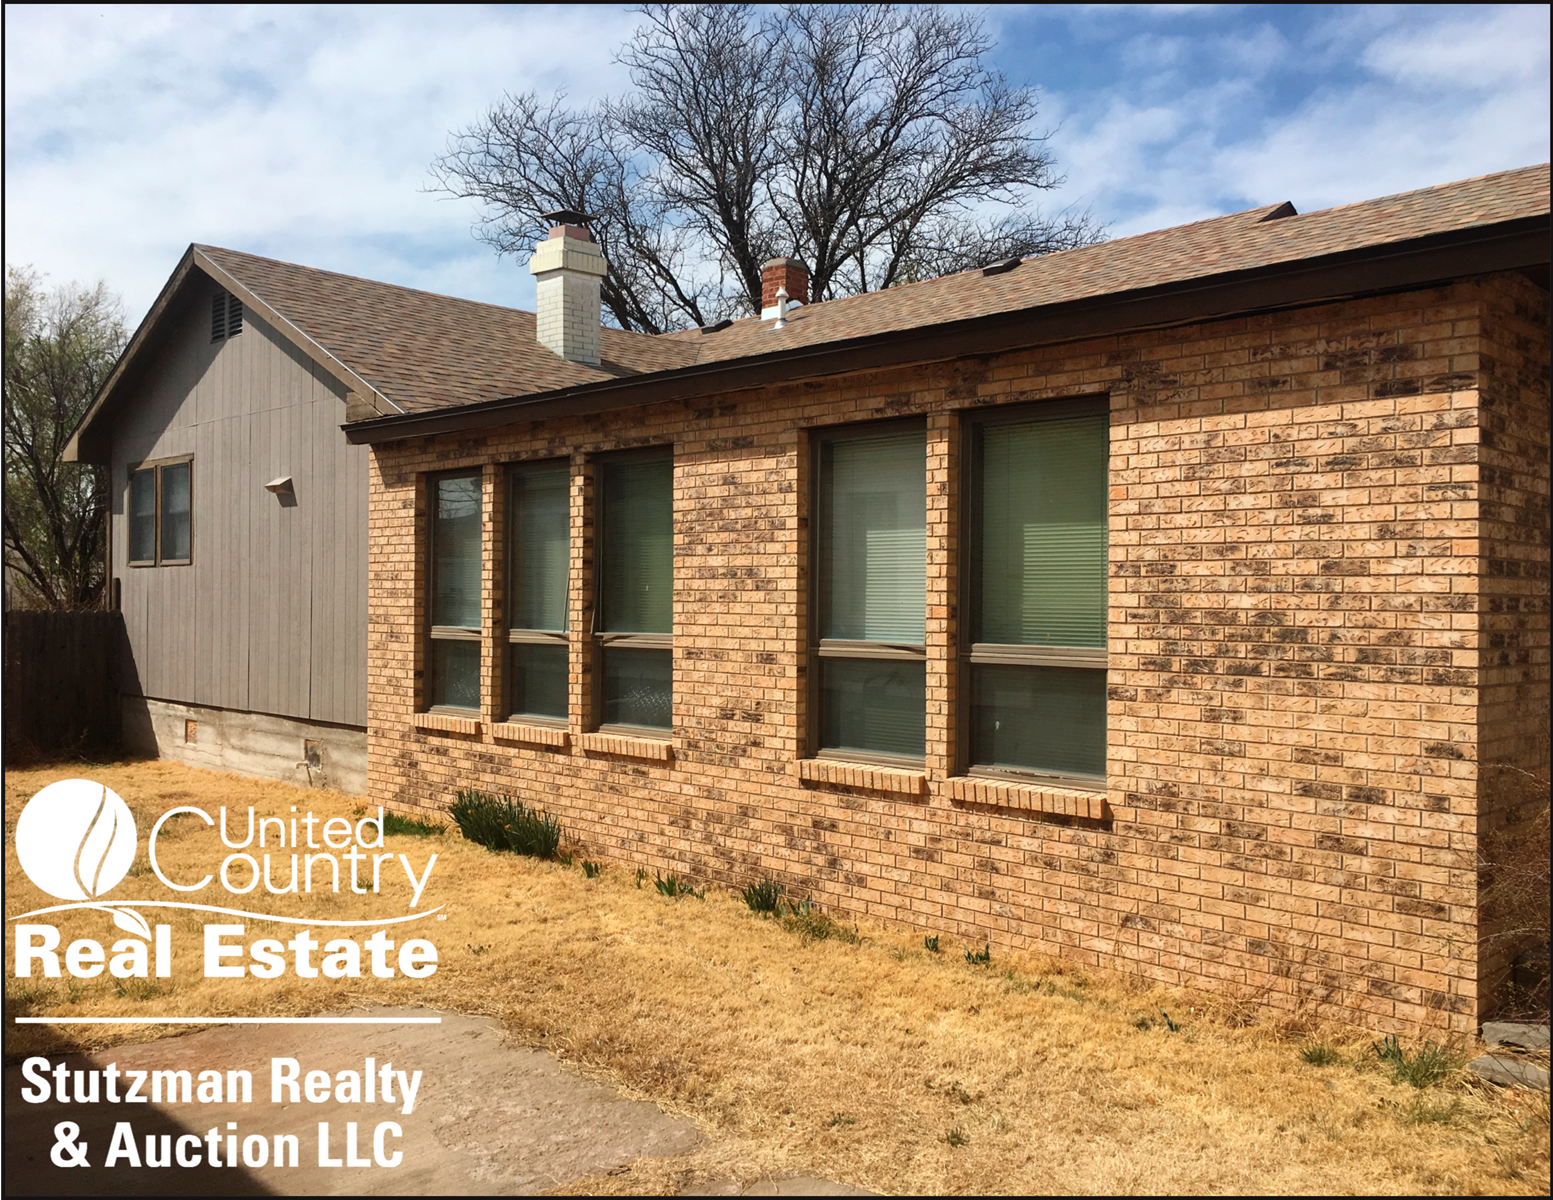 CLEAN, UPDATED AND AFFORDABLE HOME FOR SALE IN ULYSSES, KS